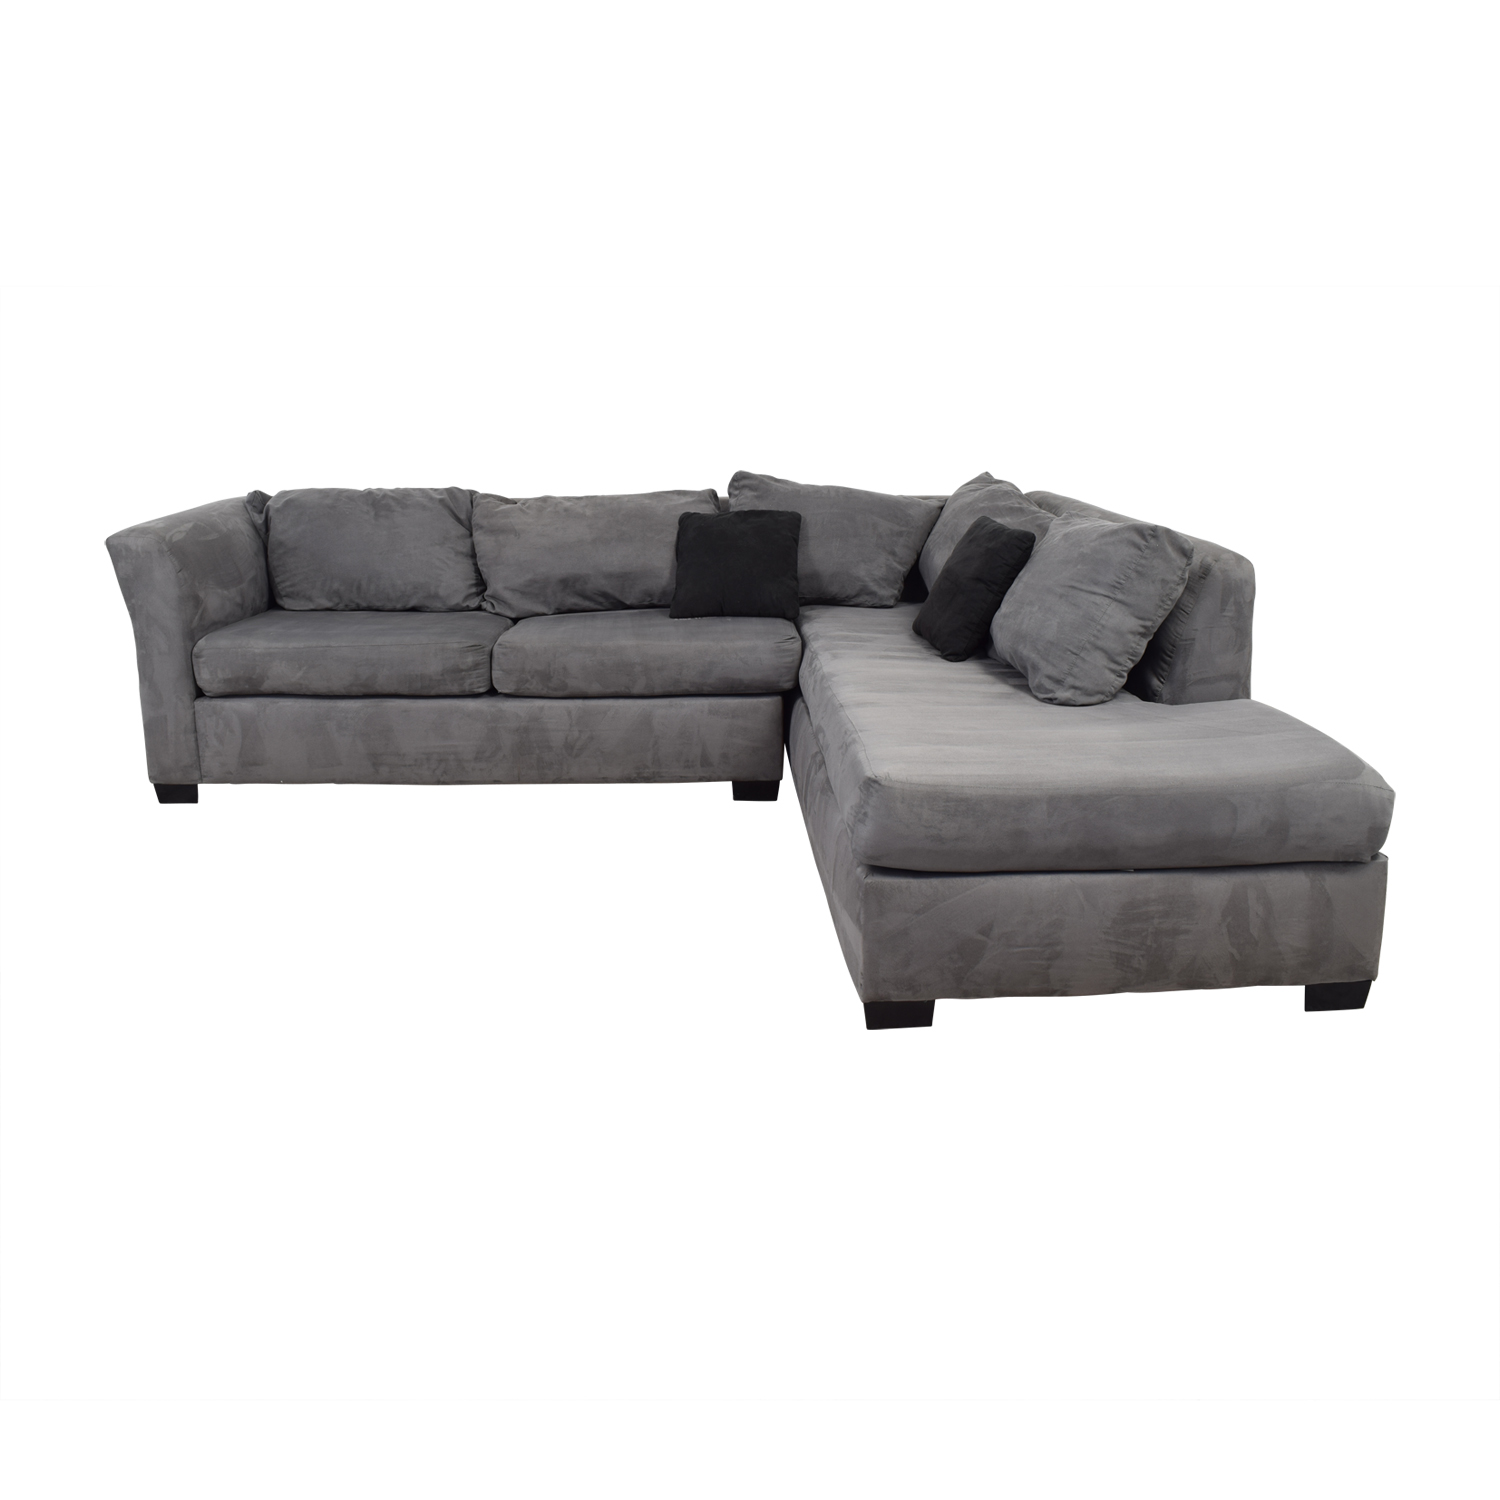 55% OFF - Custom Gray Microfiber L-Shaped Sectional / Sofas